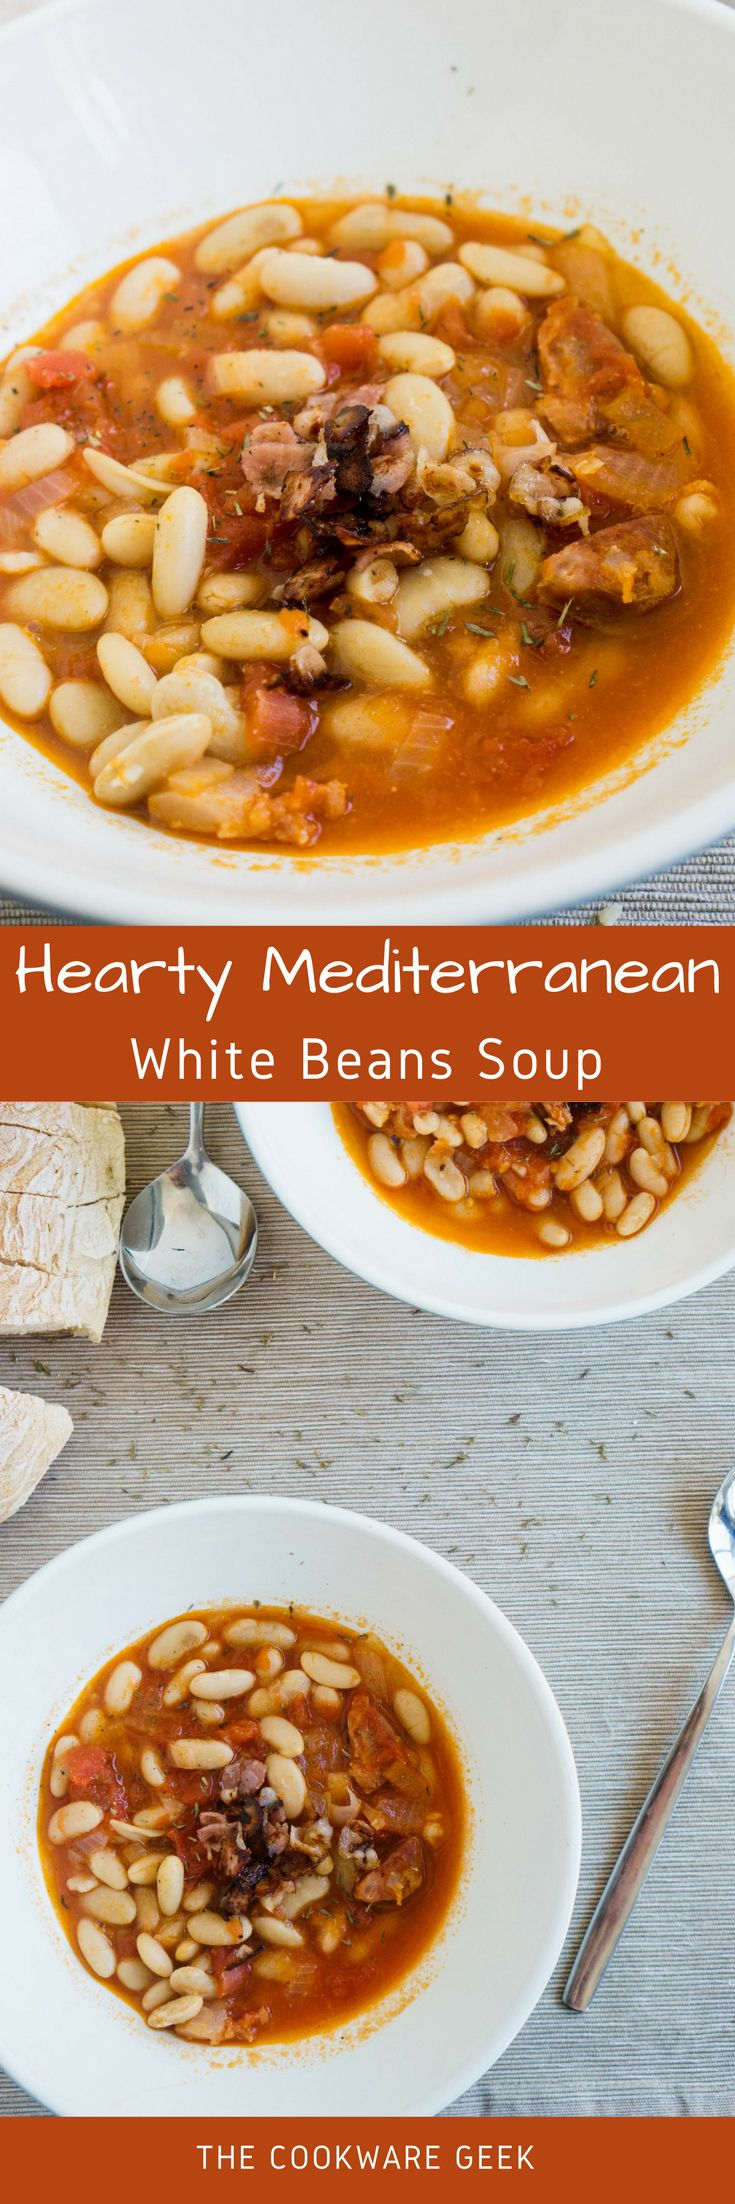 This white beans soup is like a big hug for your stomach. It is cozy, hearty, and 100% warmly. Perfect for a cold winter night.| The Cookware Geek